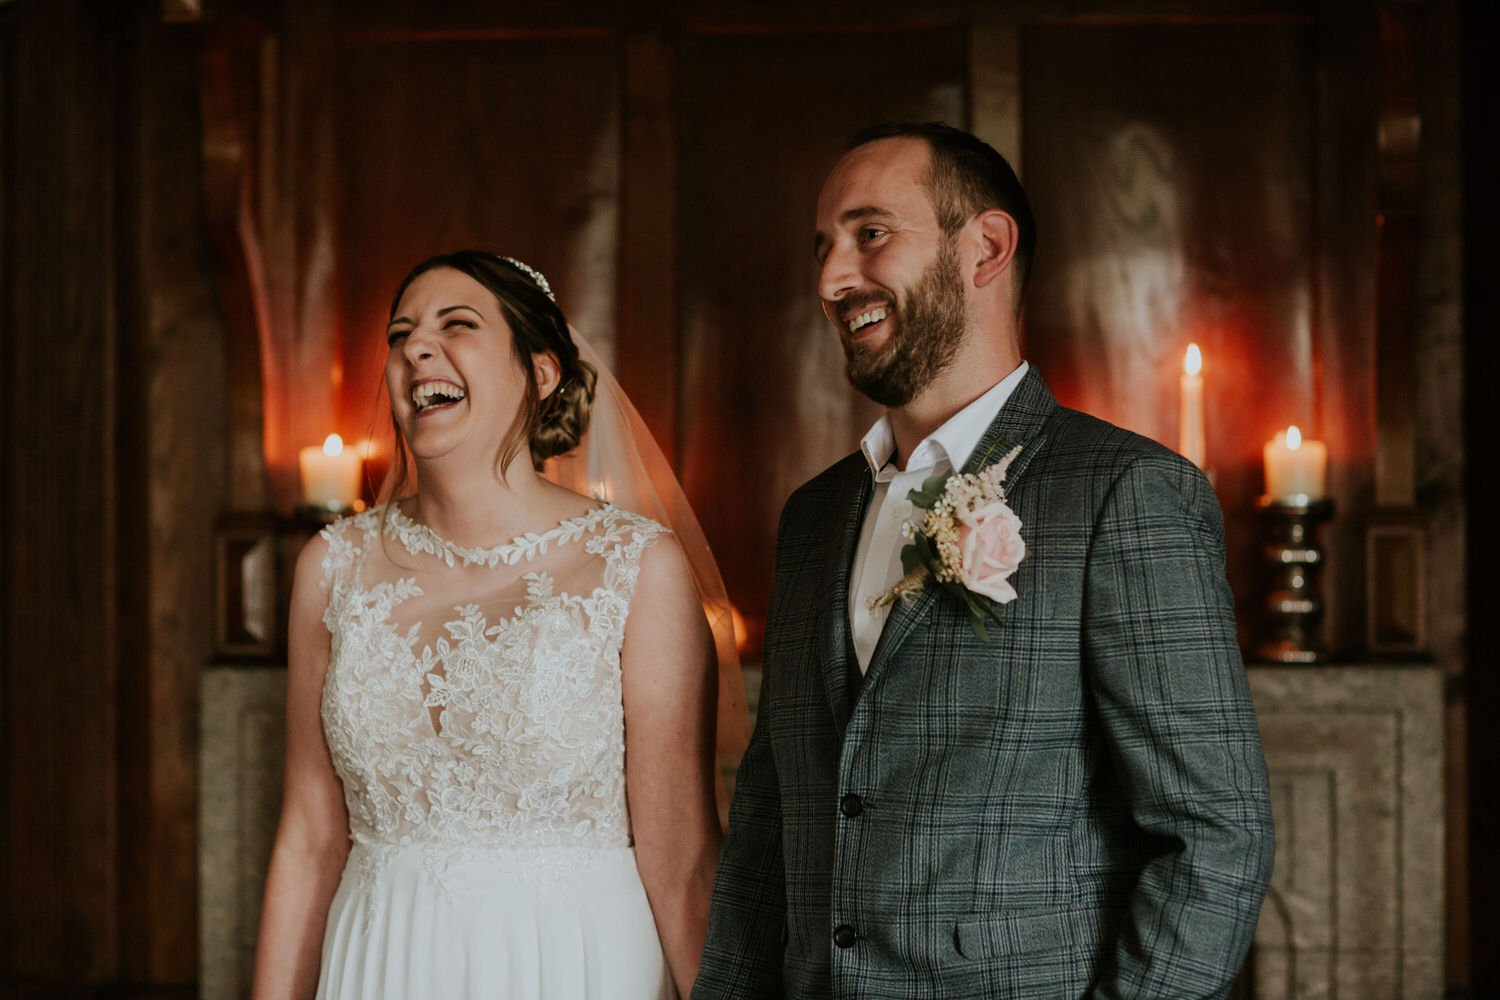 Bride laughs during her elopement with her groom in a candlelit ceremony in Cornwall